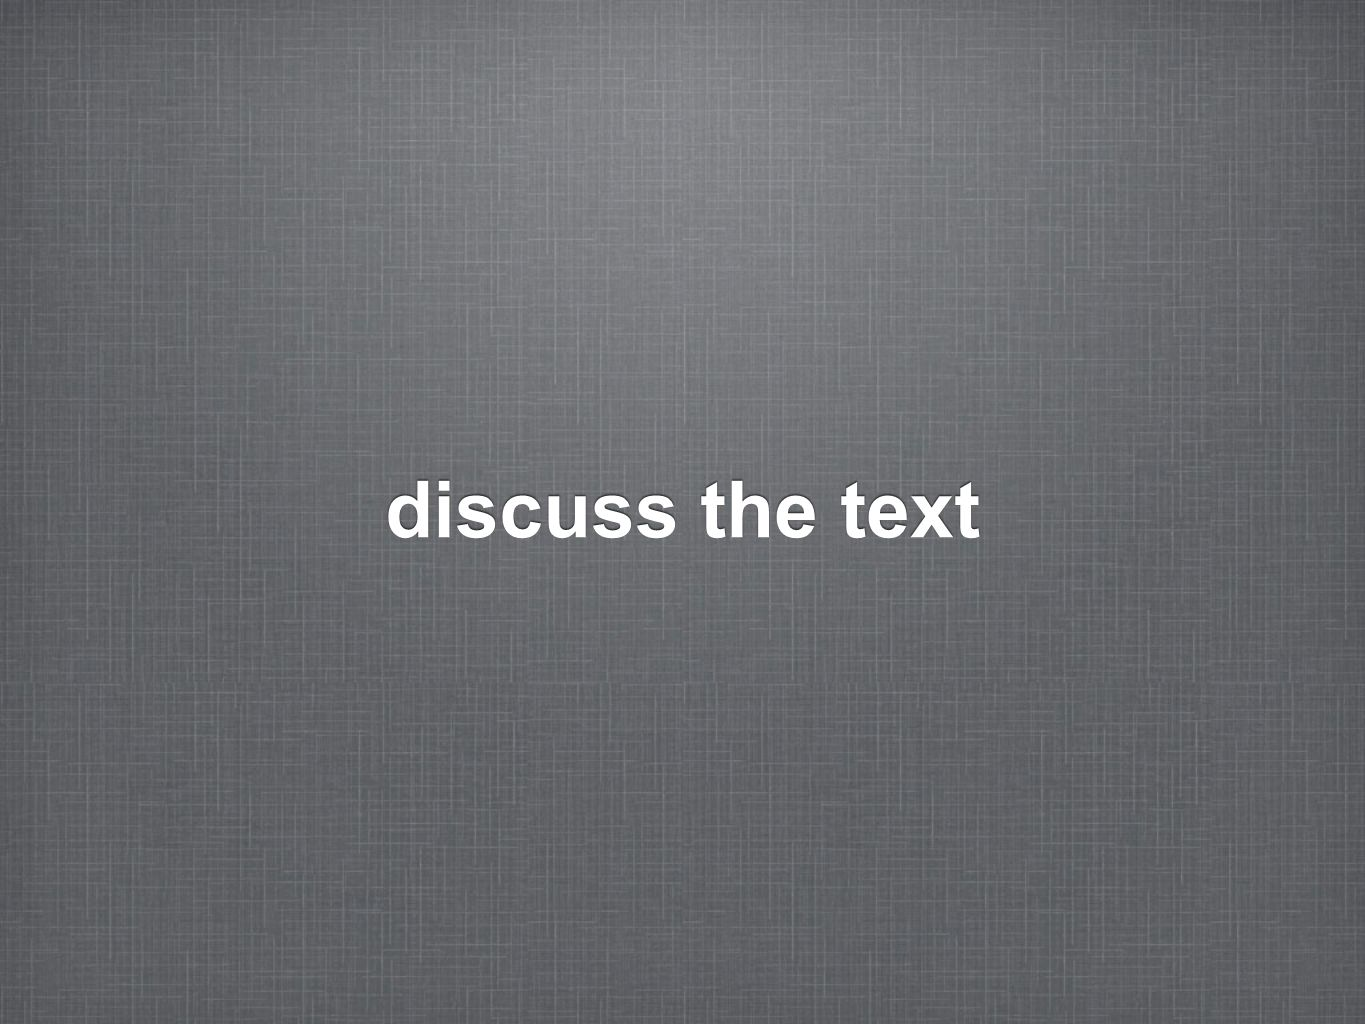 discuss the text